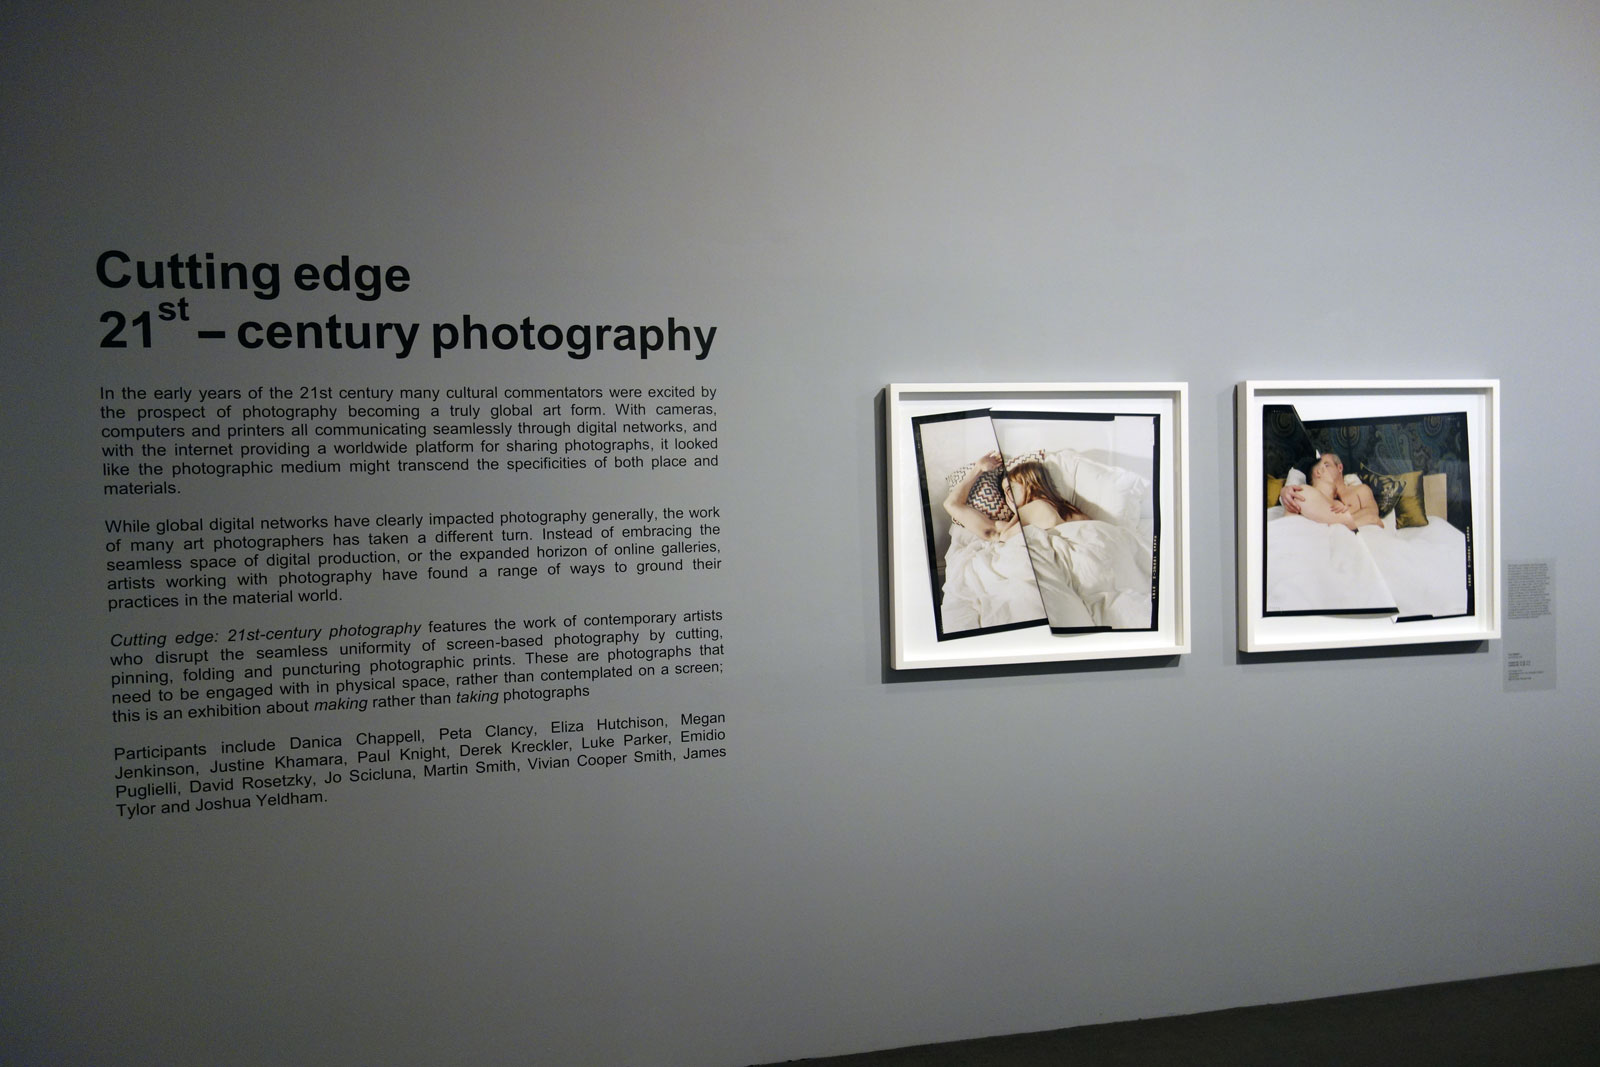 Photography Exhibition Exhibition Cutting Edge 21st Century Photography At The Monash